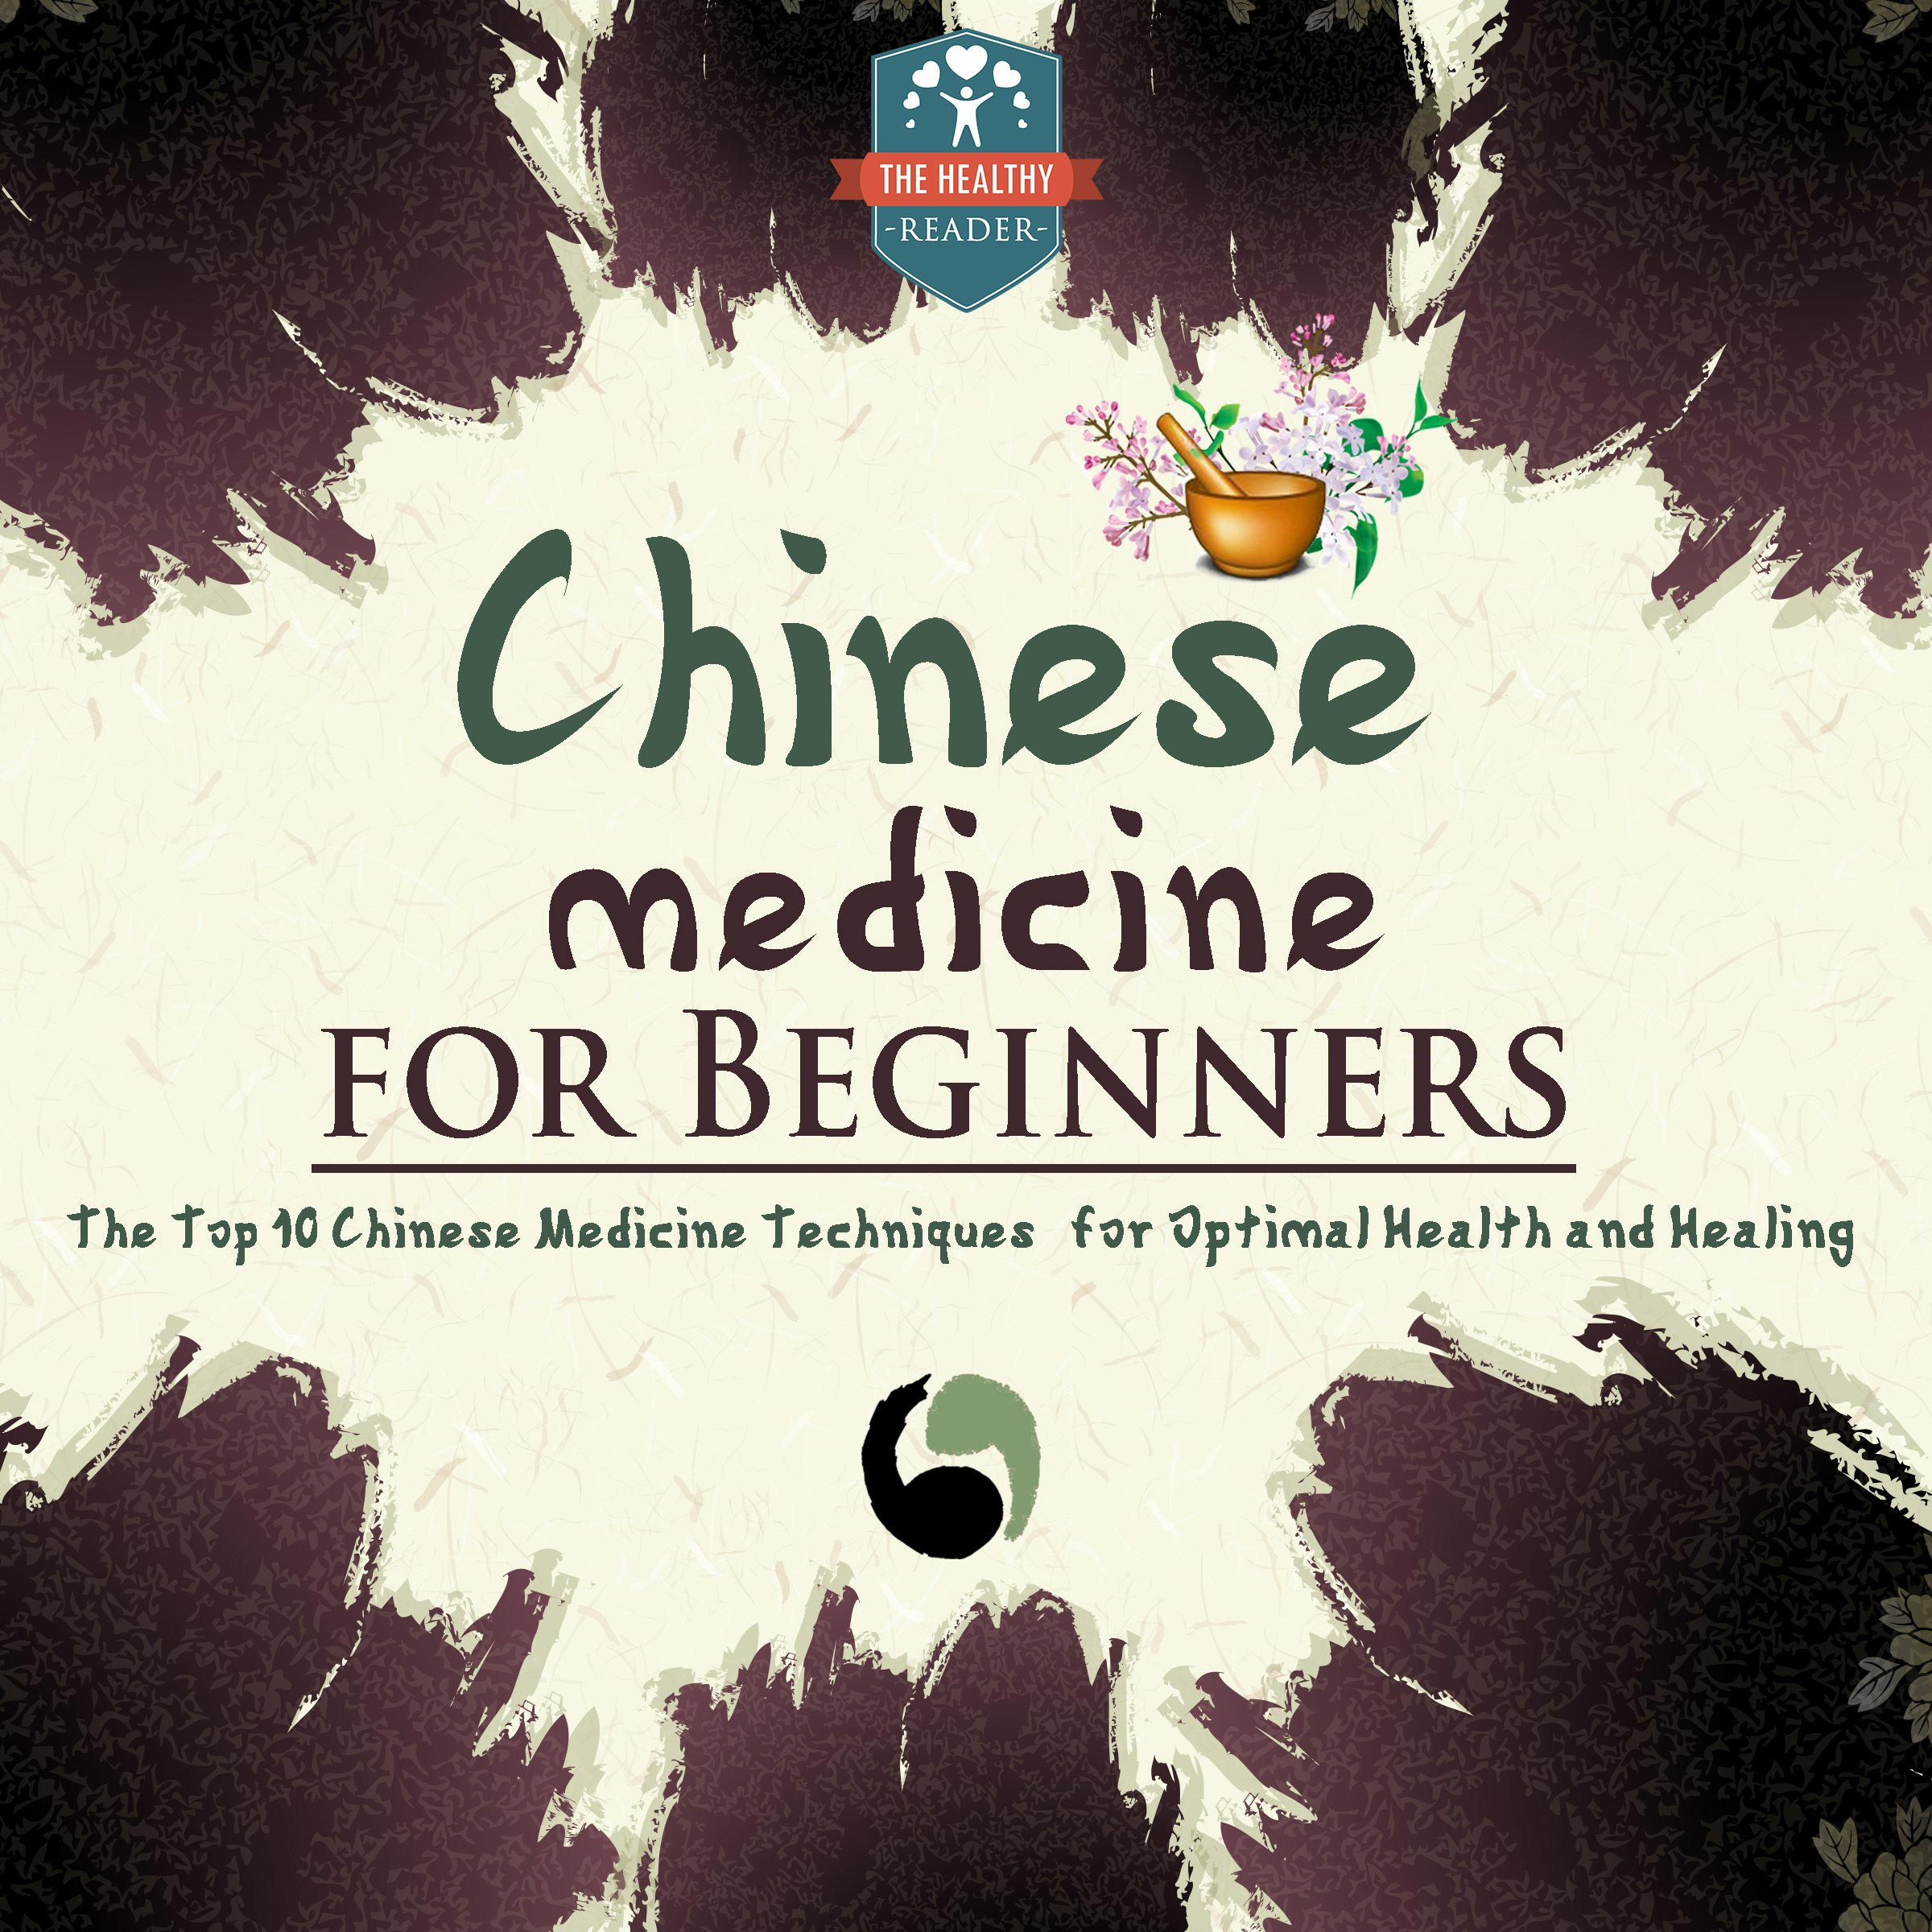 Chinese Medicine For Beginners  The Top 10 Chinese Medicine Techniques For Optimal Health And Healing